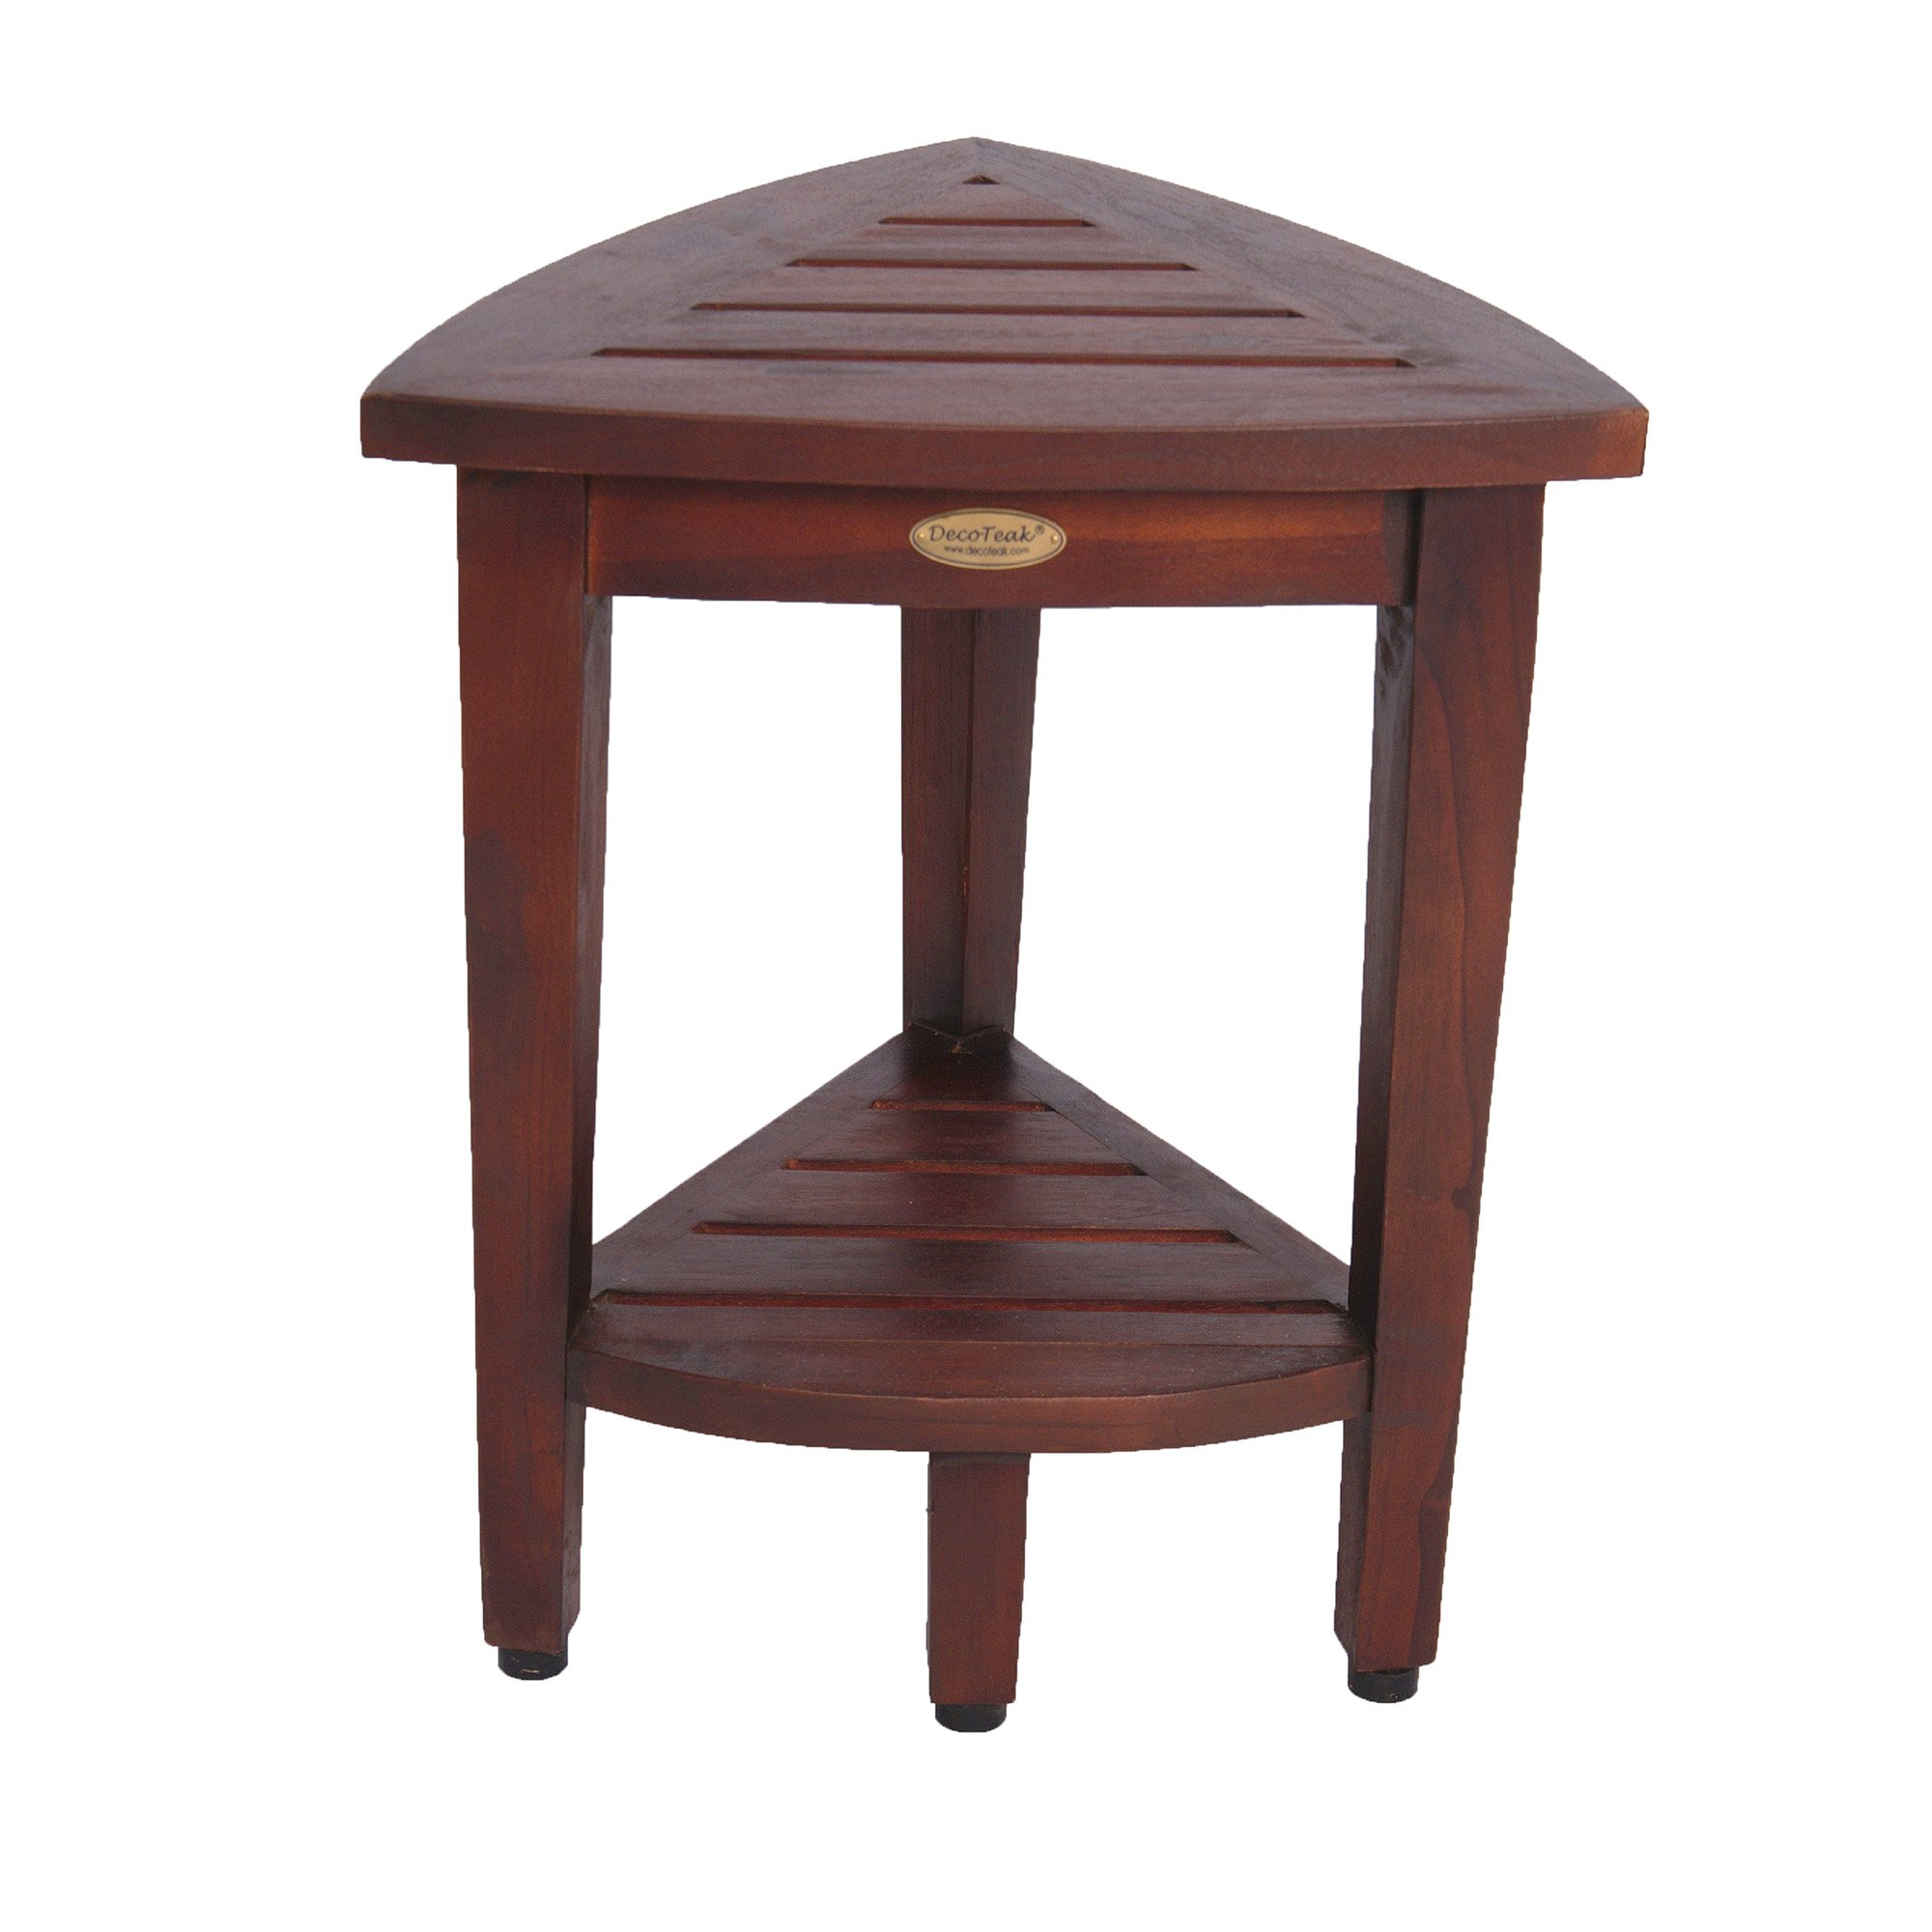 special bay on up extra bathroom corner interior with bench ideas under bamboo shower benches indoor seat small long stand window stool seats best storage pinterest decorative sink large